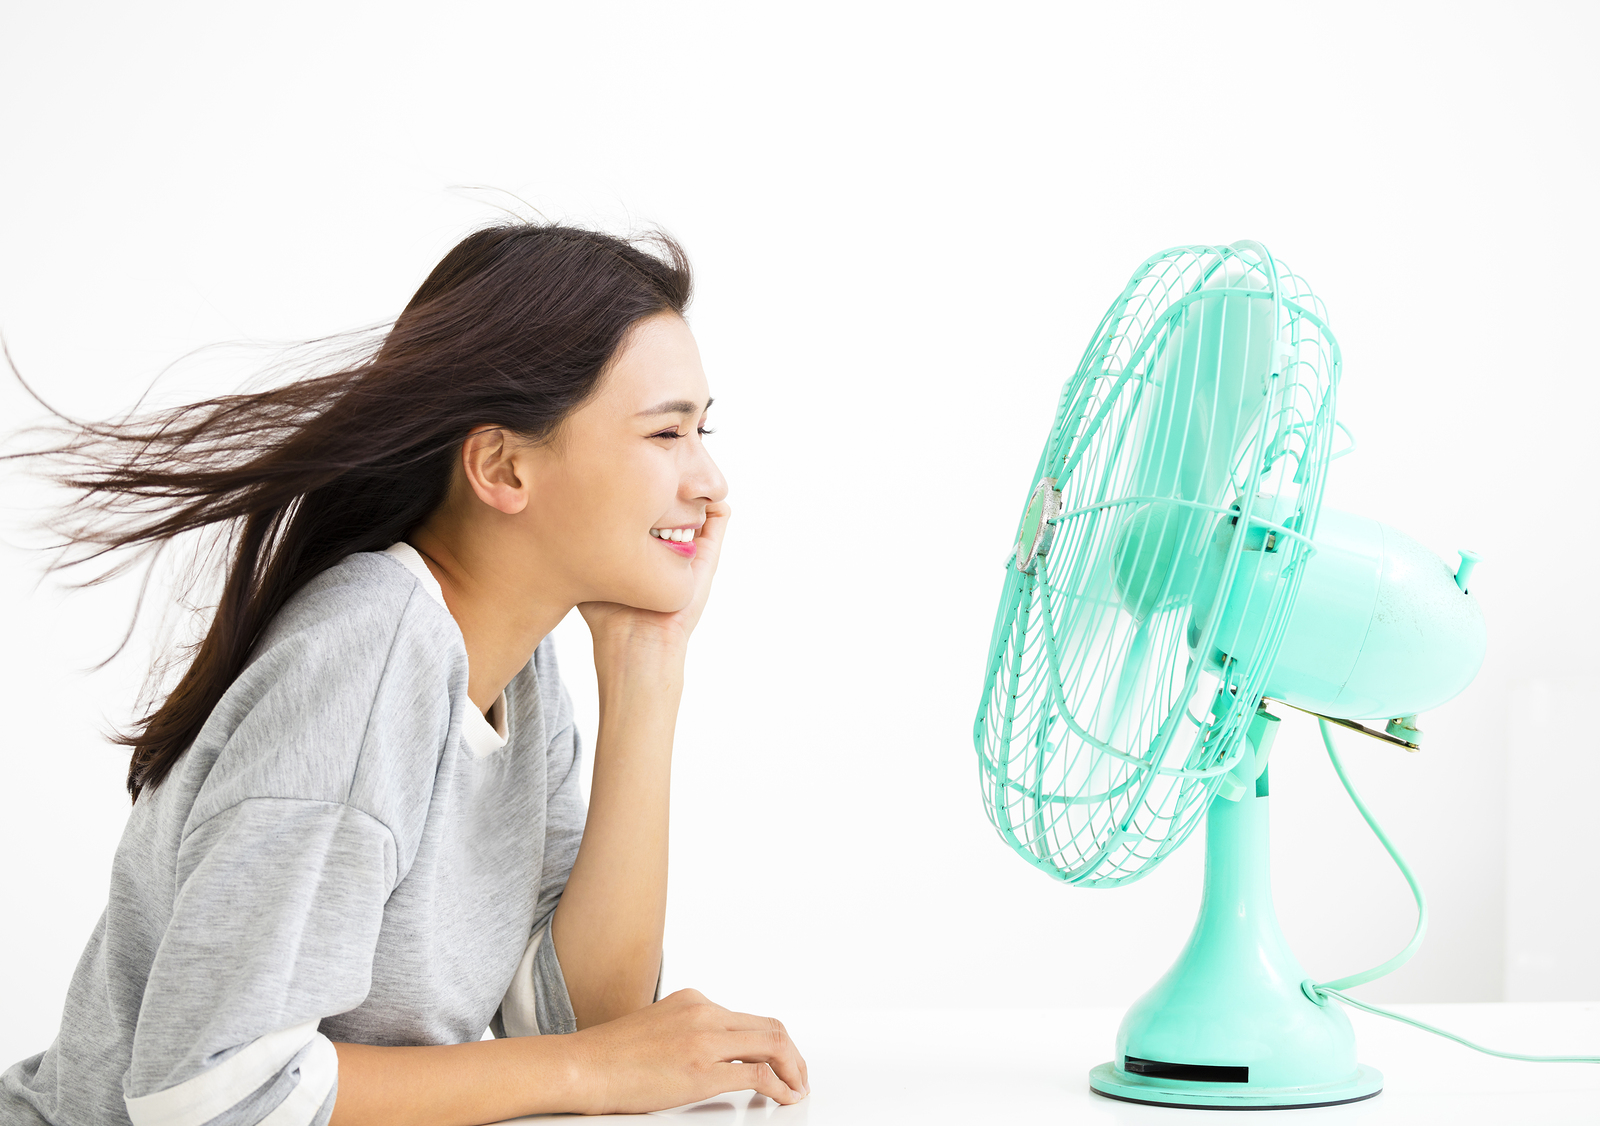 These 6 tips can help you stay comfortable without turning on the A/C as much.